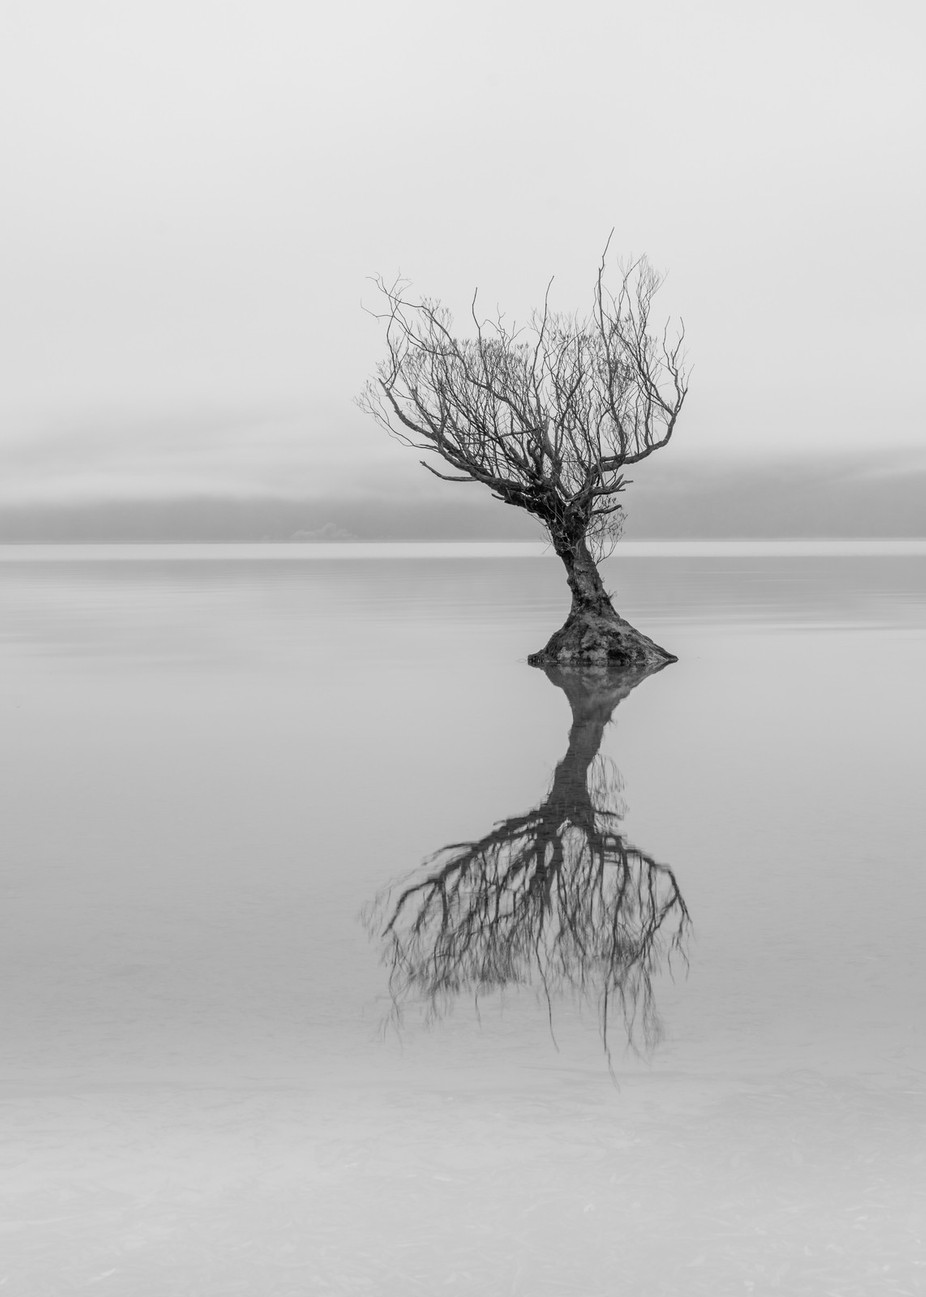 Alone by jamierichey - A Lonely Tree Photo Contest